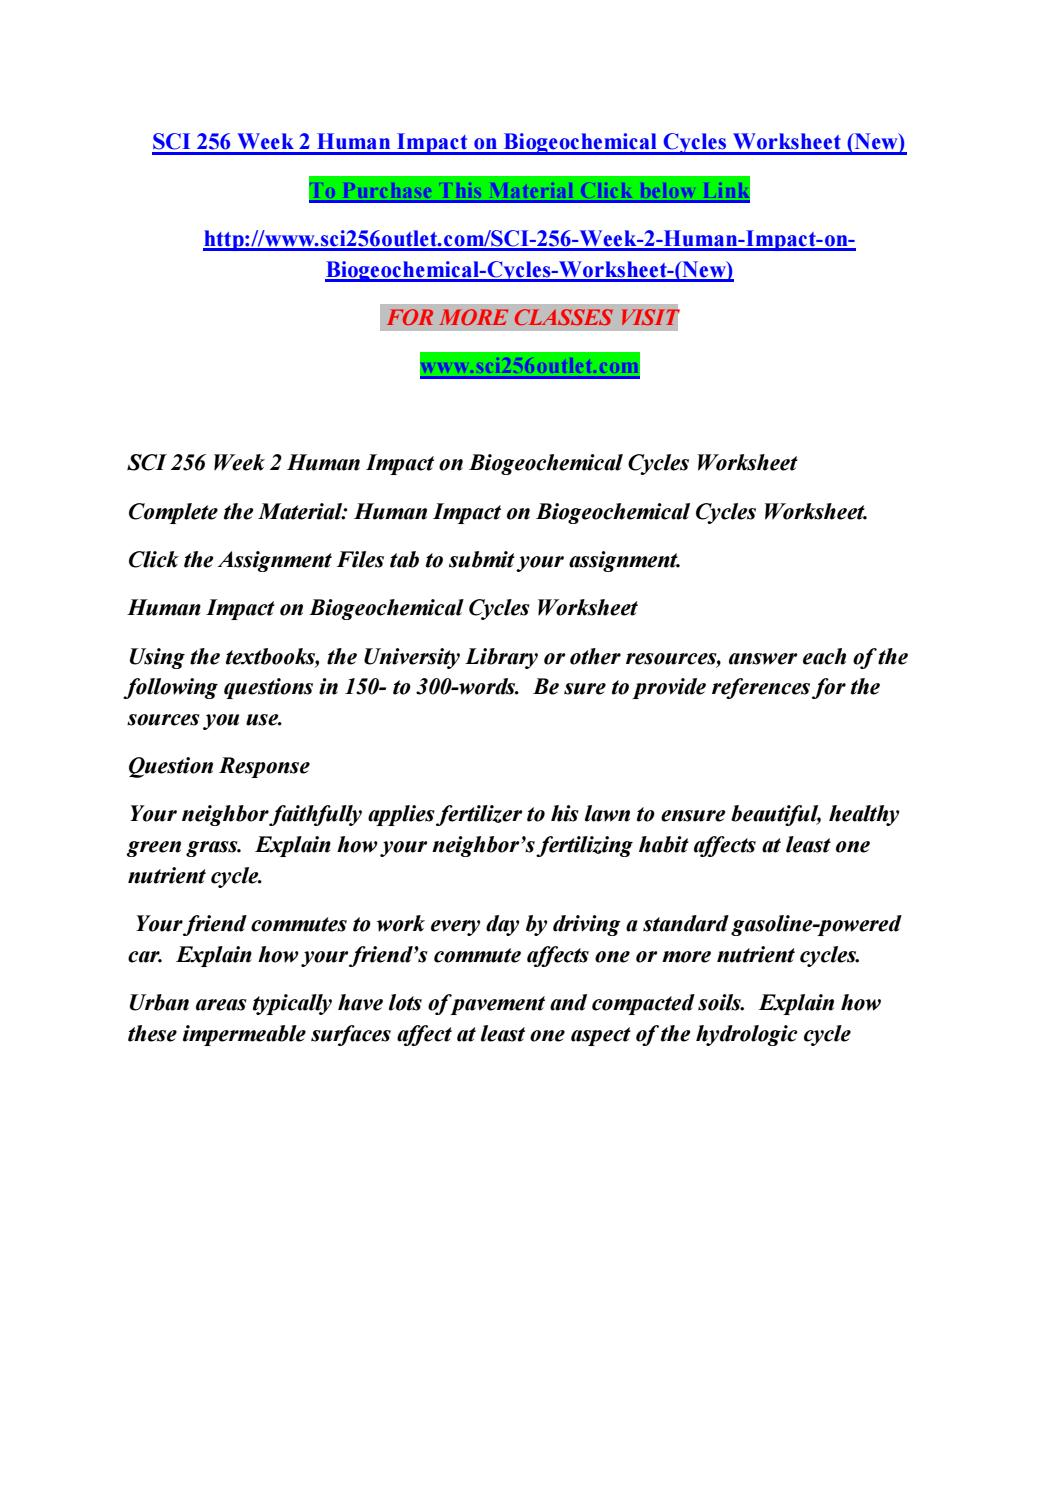 Collection of Biogeochemical Cycles Worksheet Answers Sharebrowse – Water Carbon and Nitrogen Cycle Worksheet Answers